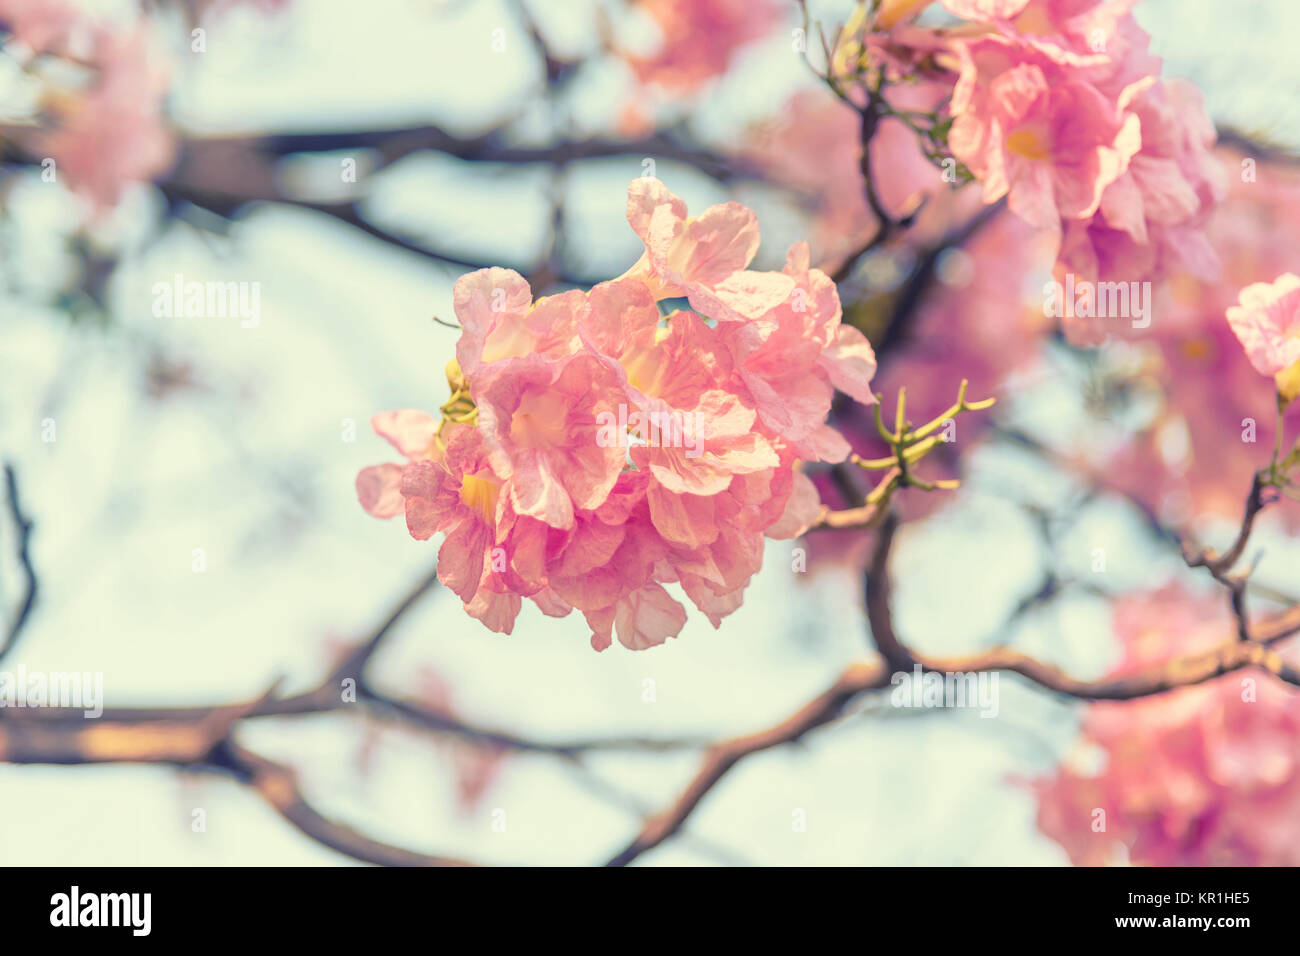 Pink trumpet flower stock photo 169066077 alamy pink trumpet flower mightylinksfo